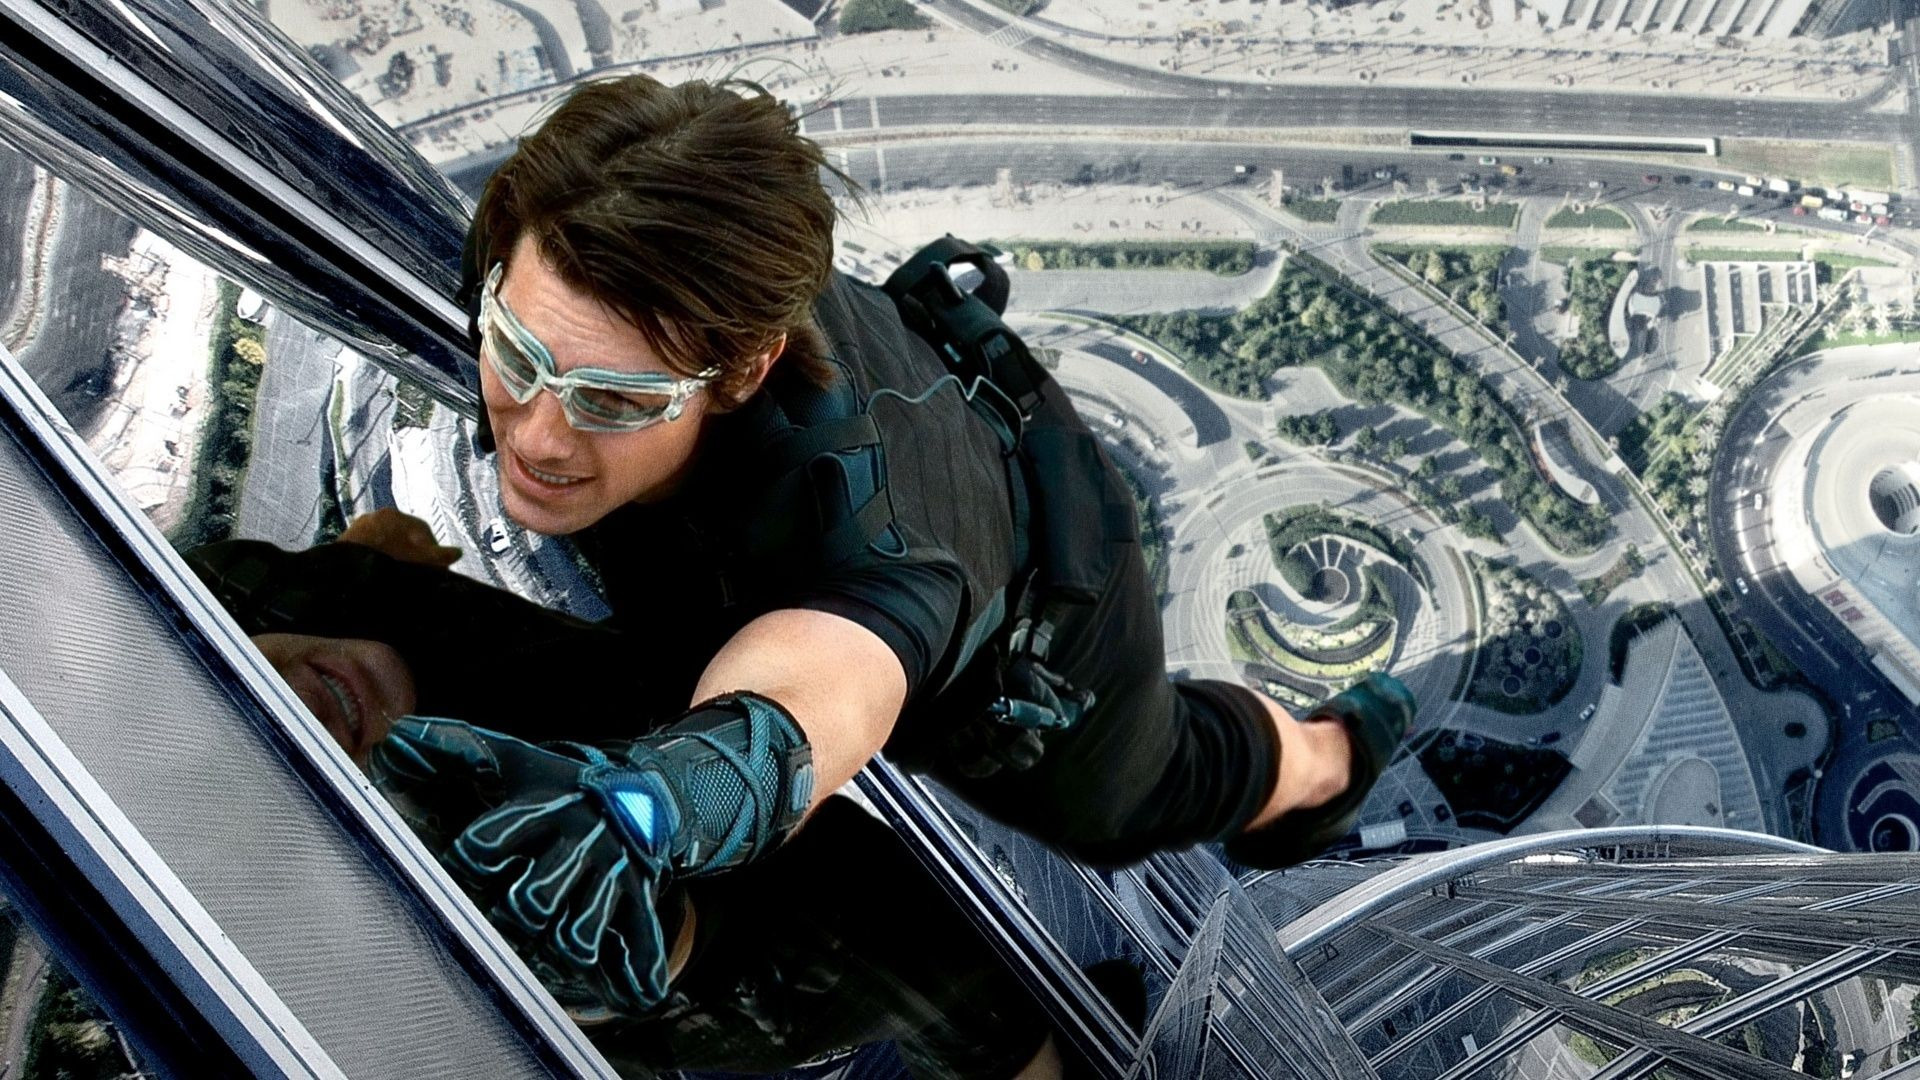 mission possible creating your own academic mission statement mission impossible ghost protocol